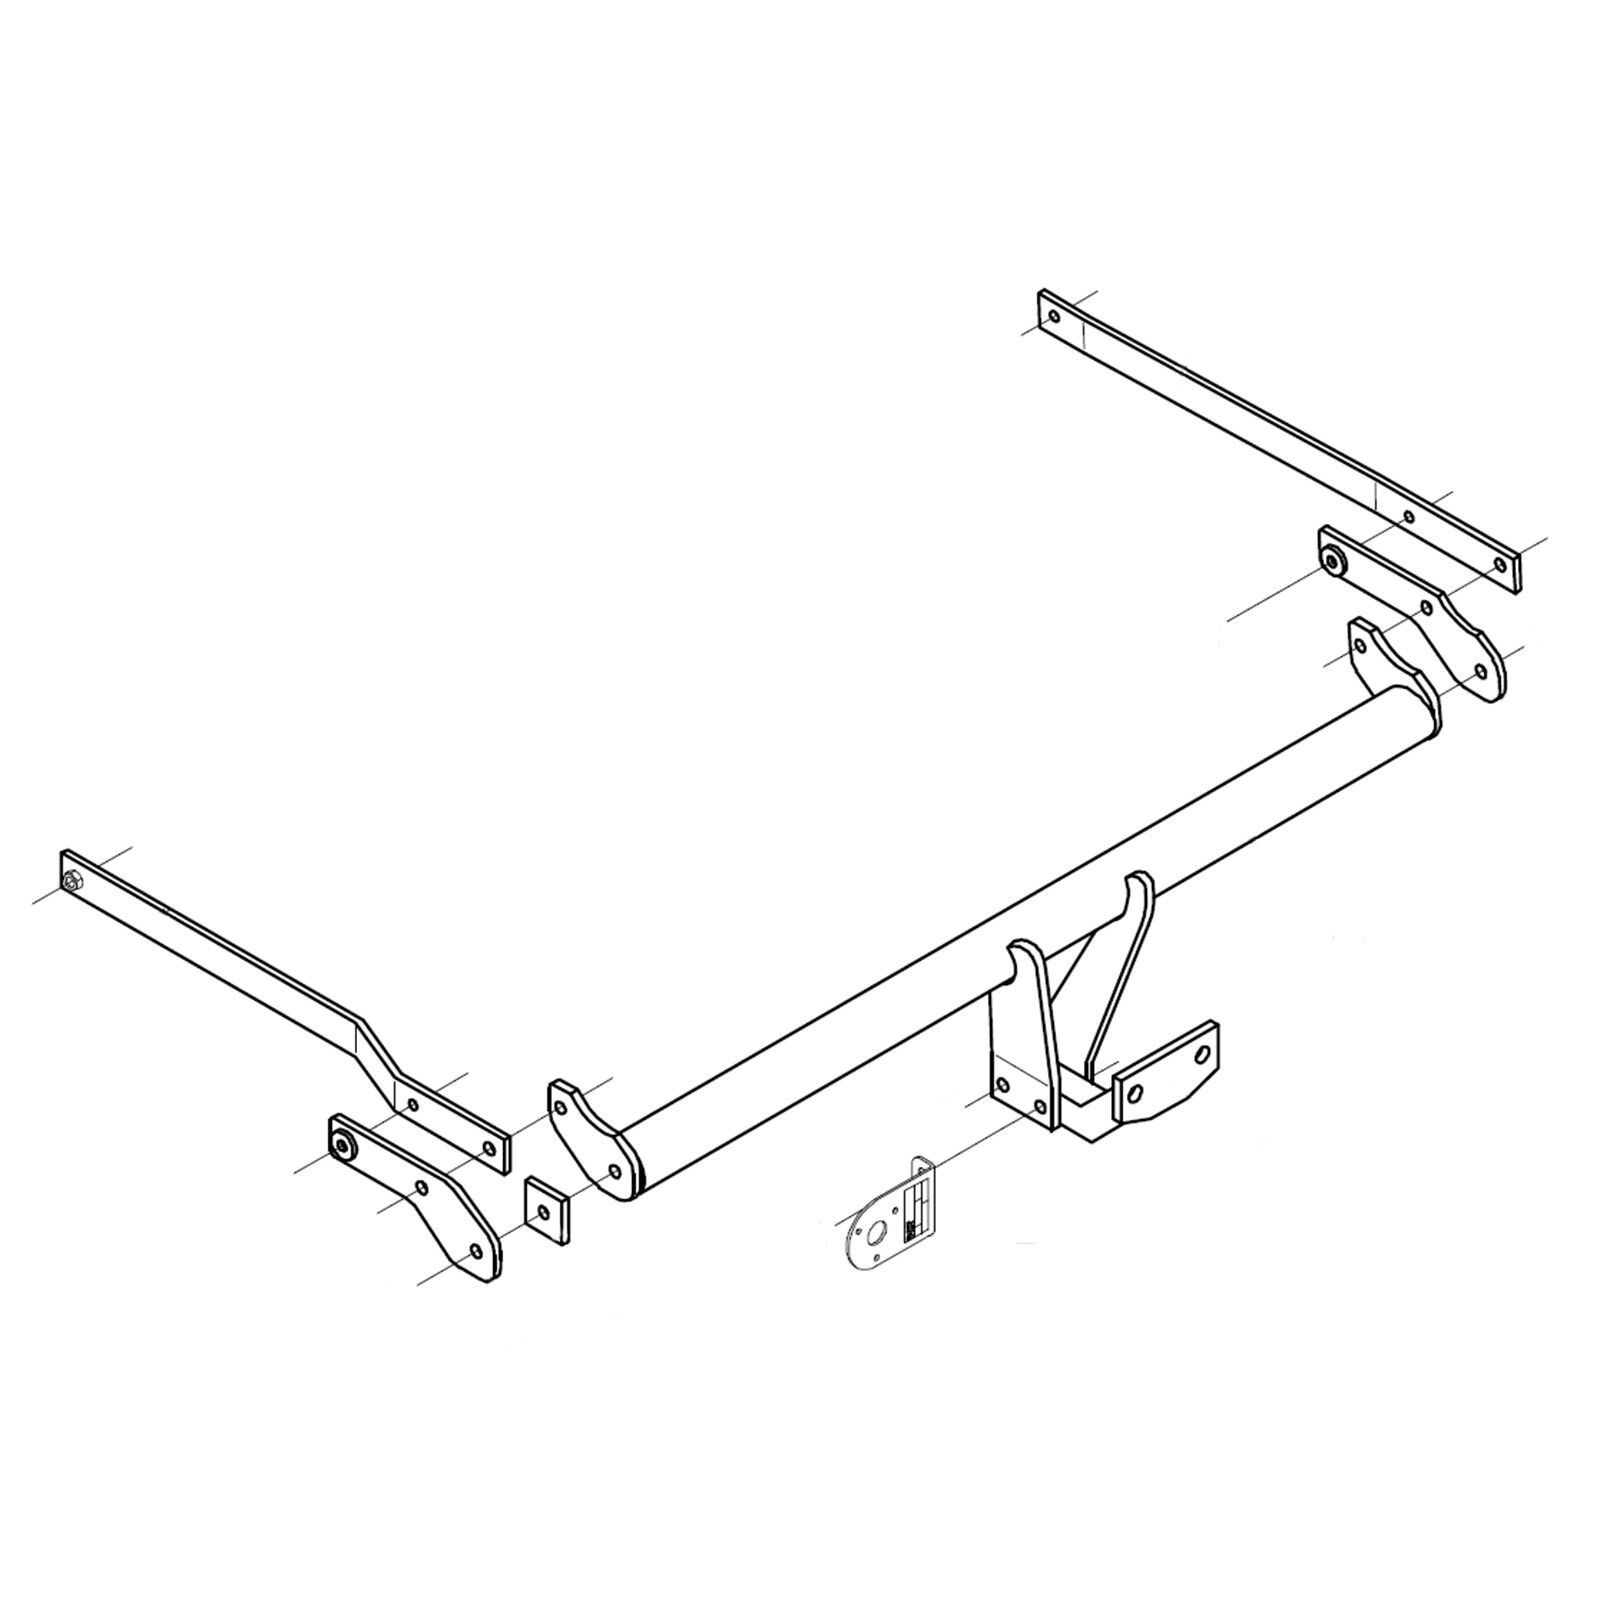 details about towbar for renault megane ii coupe cabriolet (cc) 2003-2010 -  flange tow bar